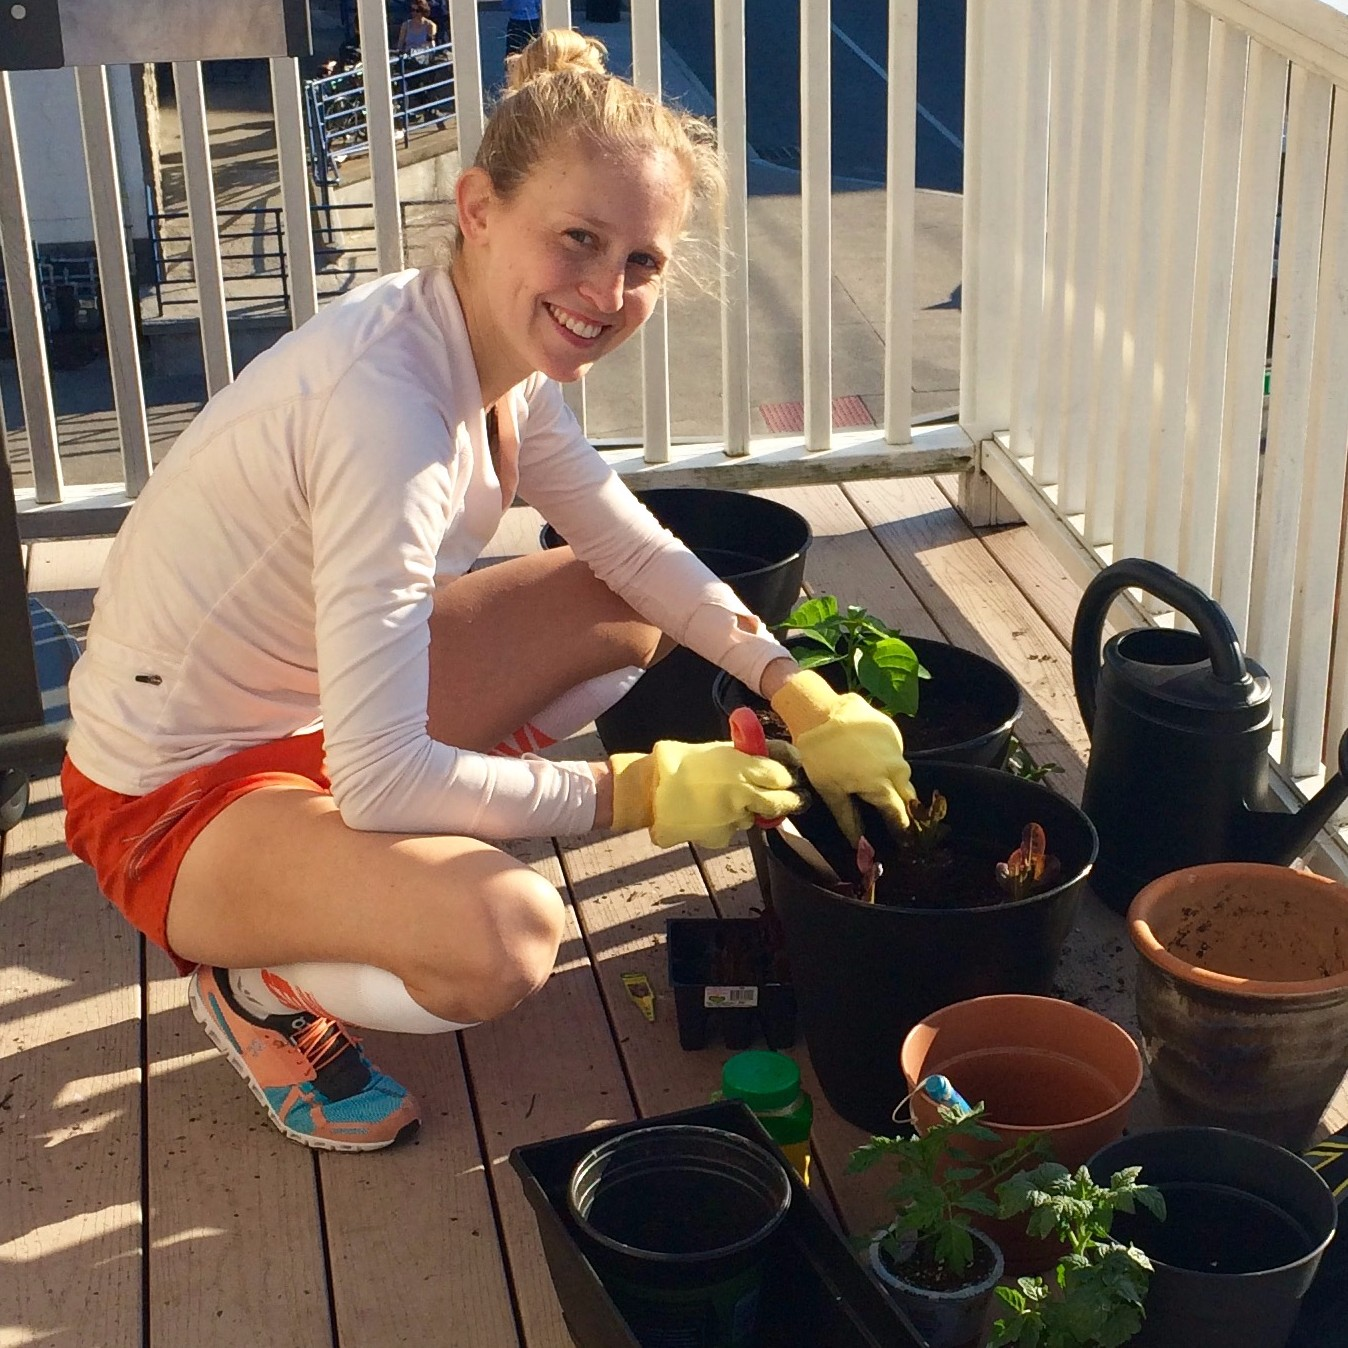 Planting my balcony garden - lots of herbs, tomatoes, peppers, and lettuce.